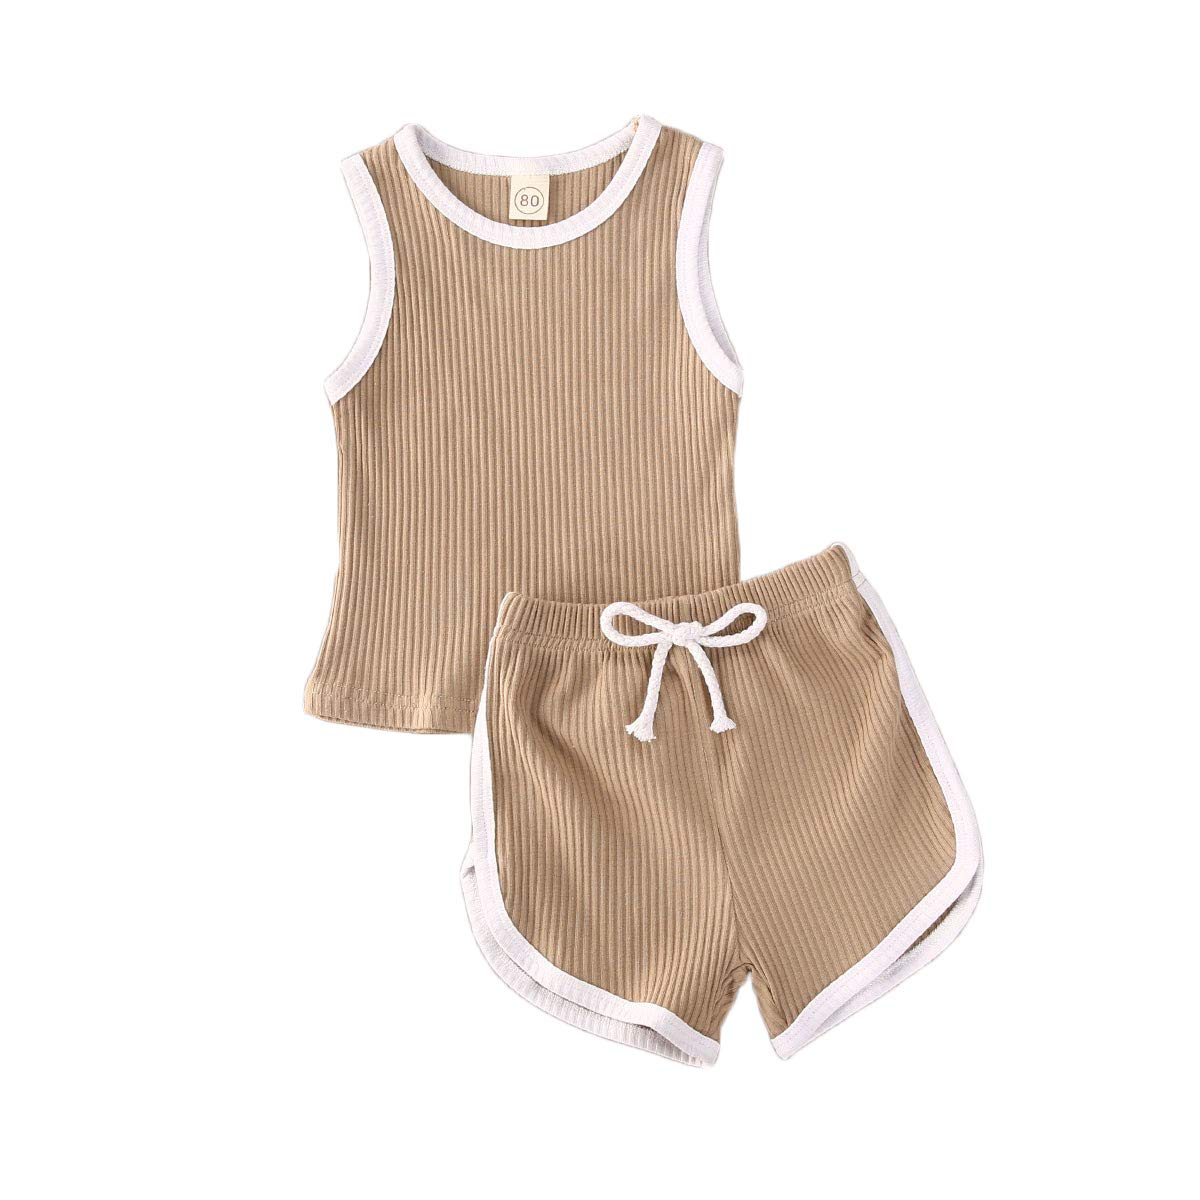 Toddler Baby Boy Girl Summer Outfits Sleeveless Tank Top Shorts Pants Solid Clothes Set